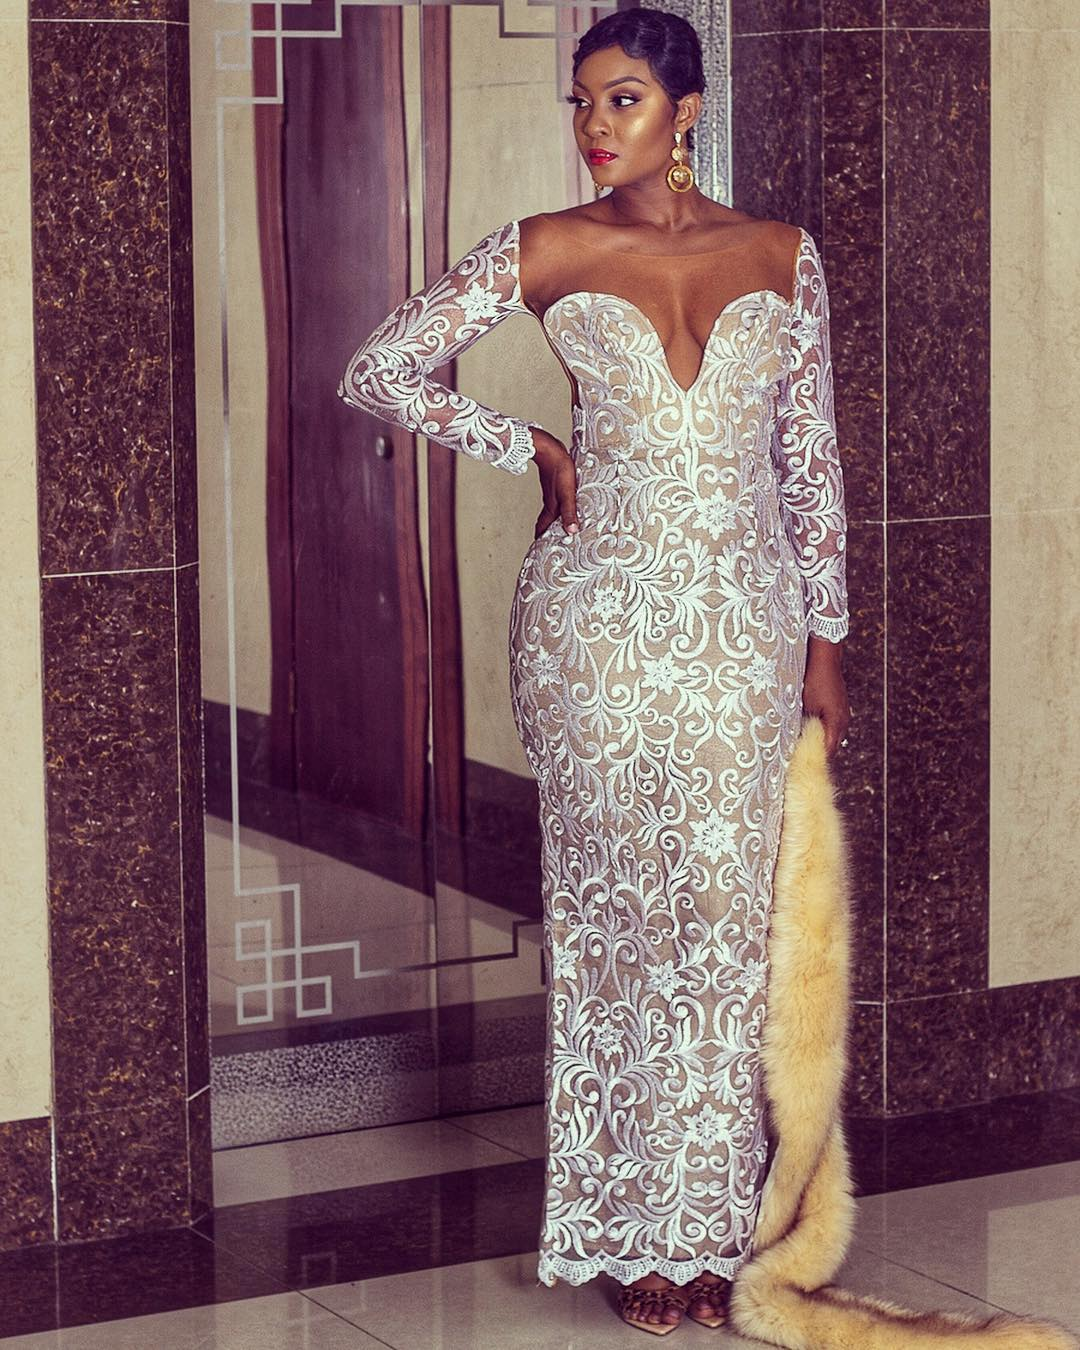 Actress, Osas Ajibade Celebrates Birthday With Beautiful Photos And A Must See Dance Video